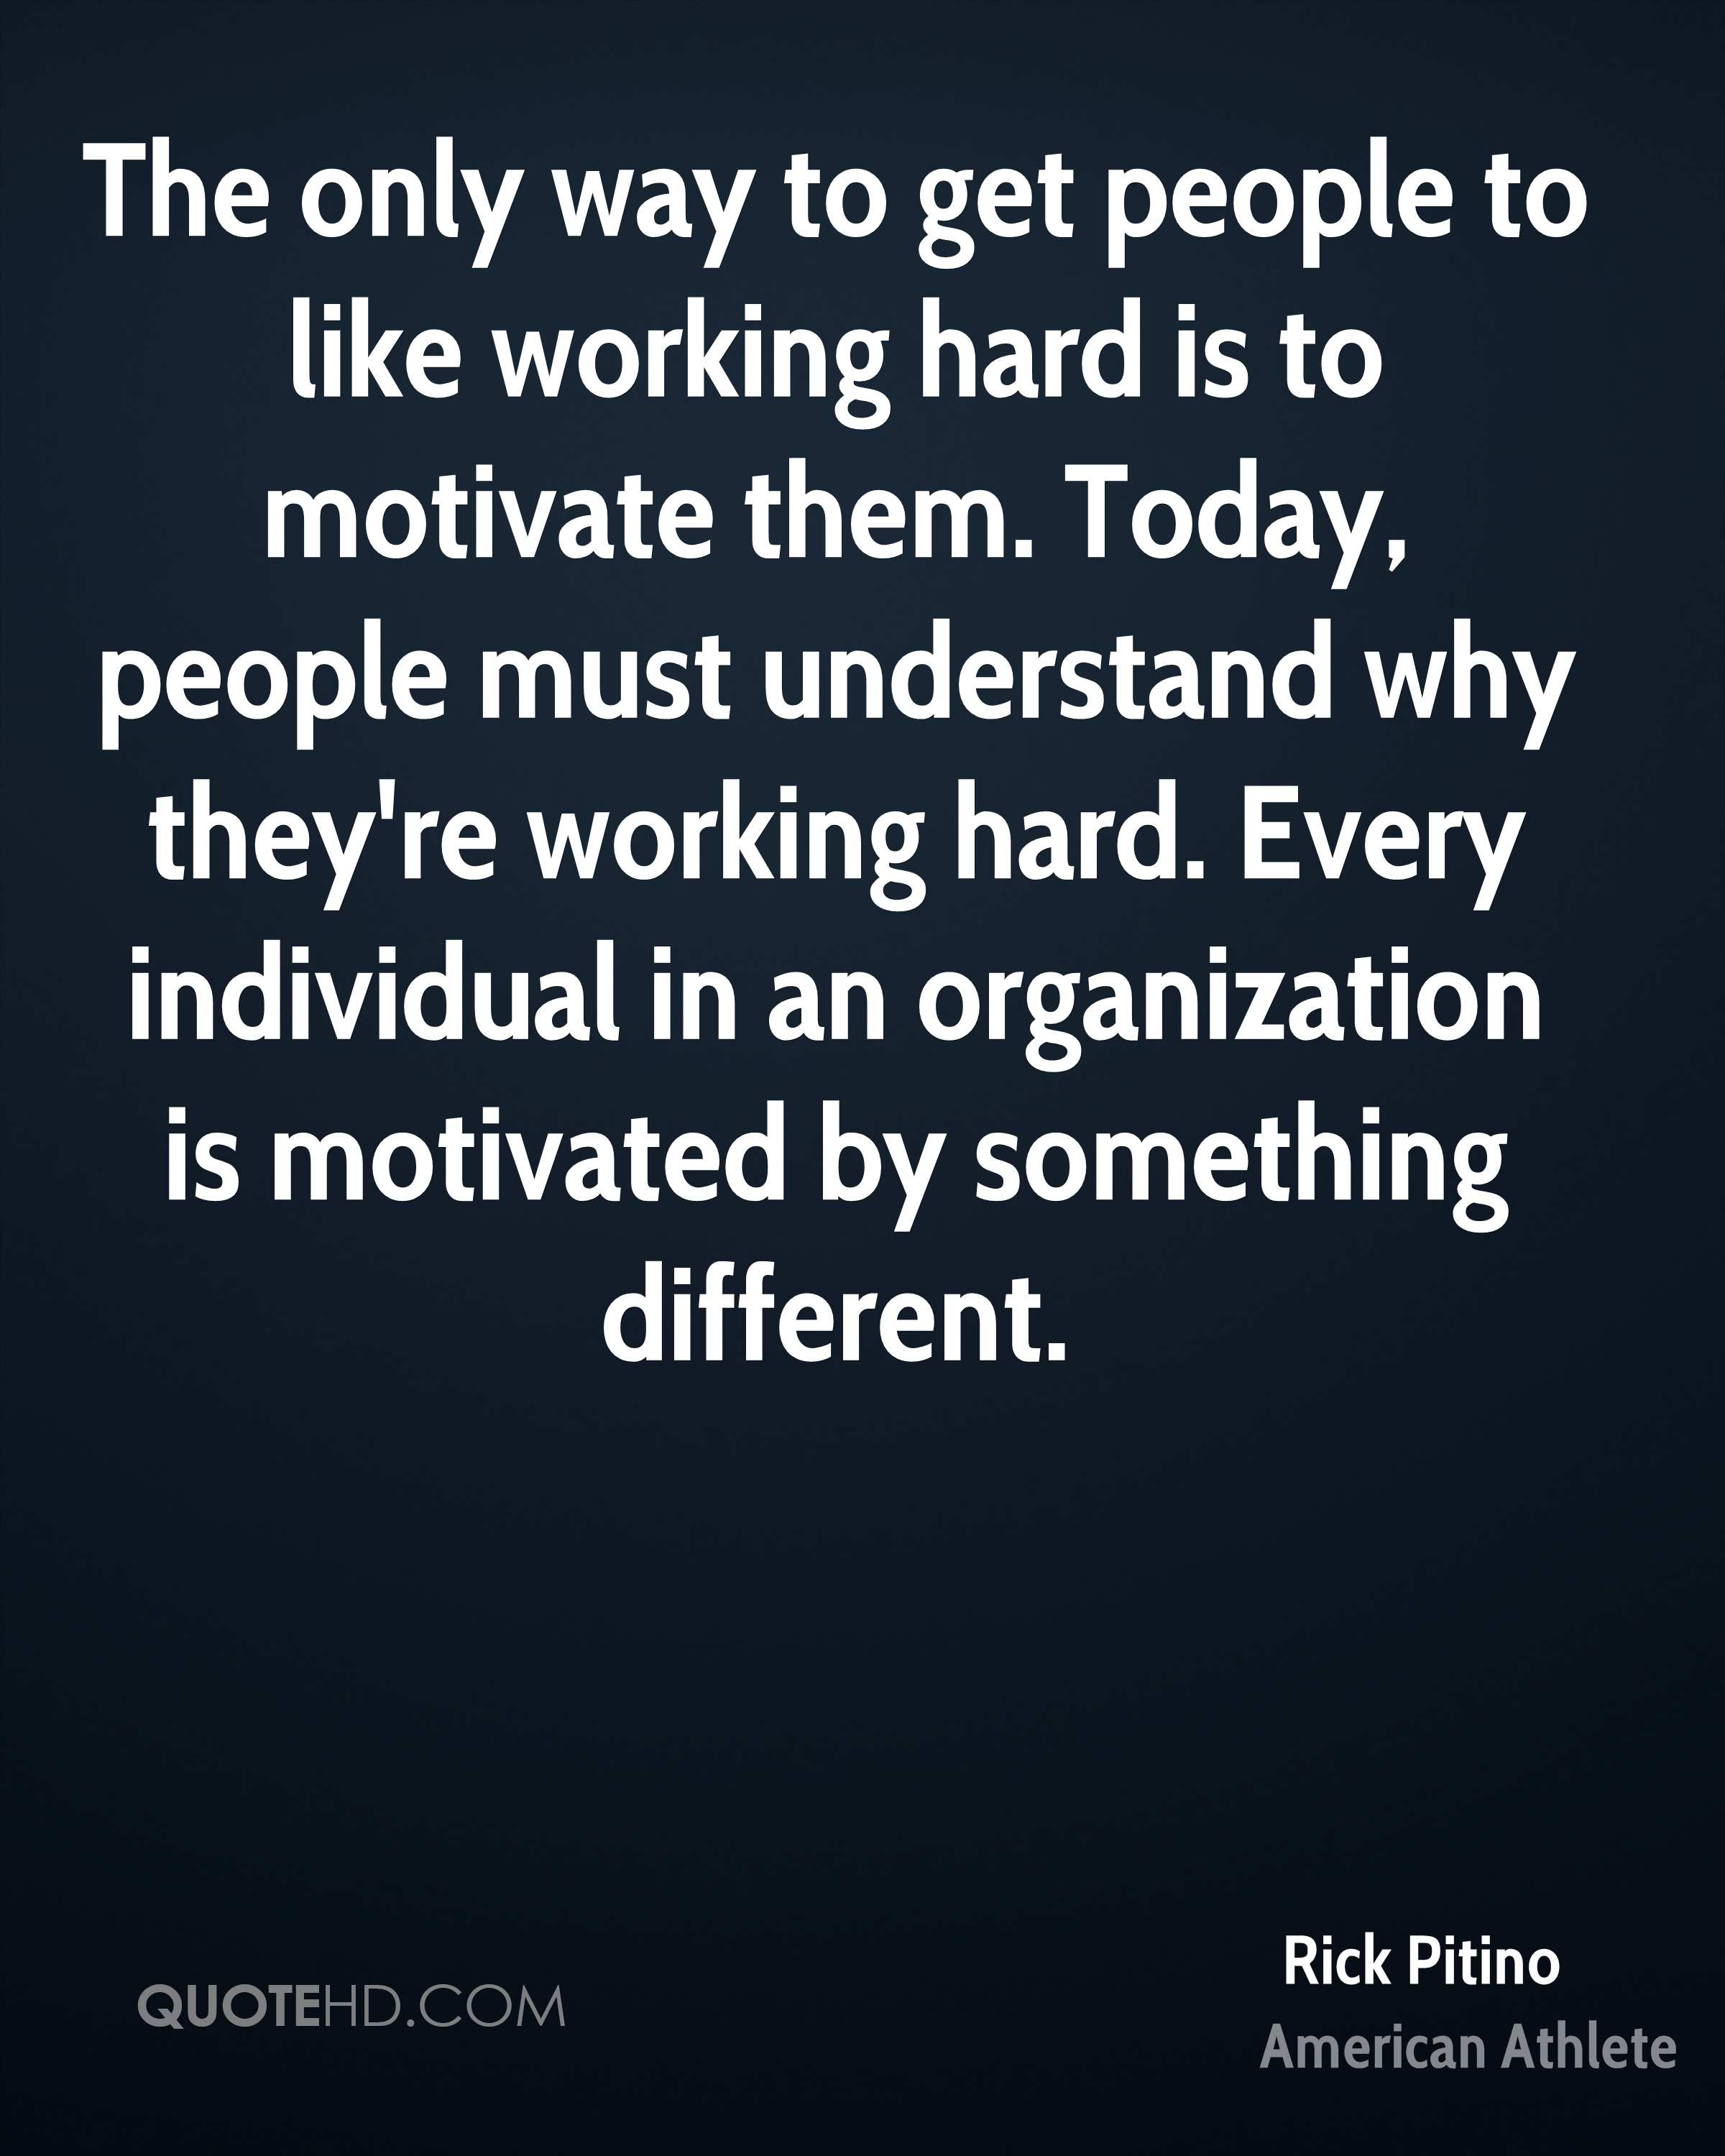 The only way to get people to like working hard is to motivate them. Today, people must understand why they're working hard. Every individual in an organization is motivated by something different.